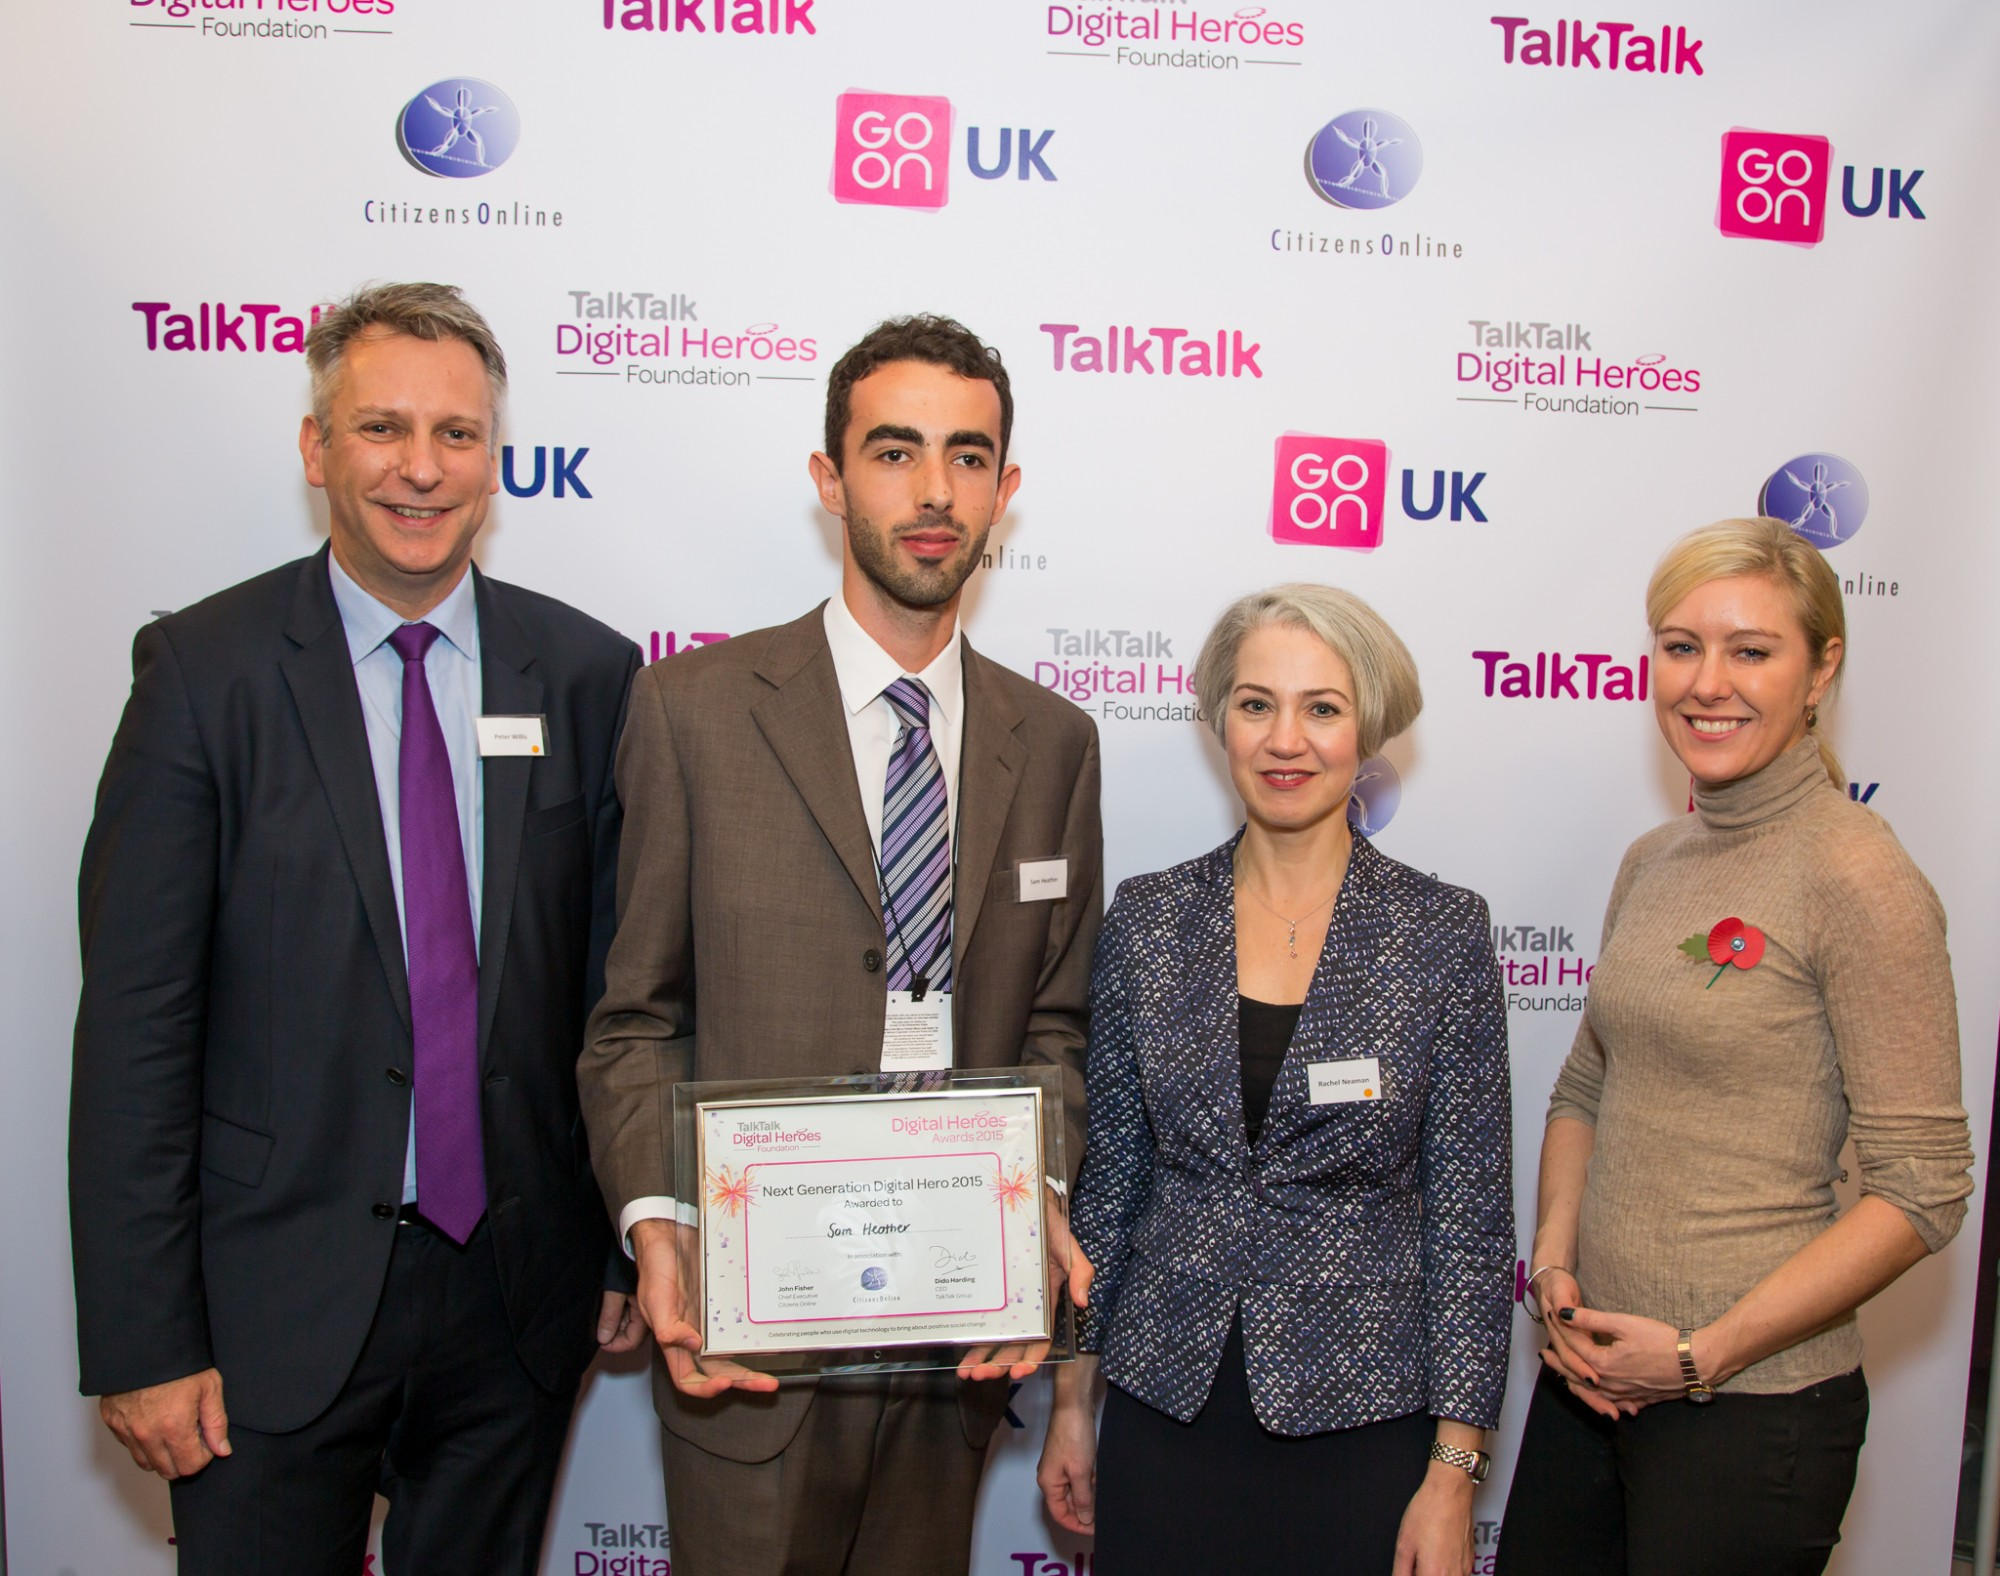 Picking up the award at the House of Lords. With: Peter Willis, myself, Rachel Neaman, Jessica Lennard (left-right)